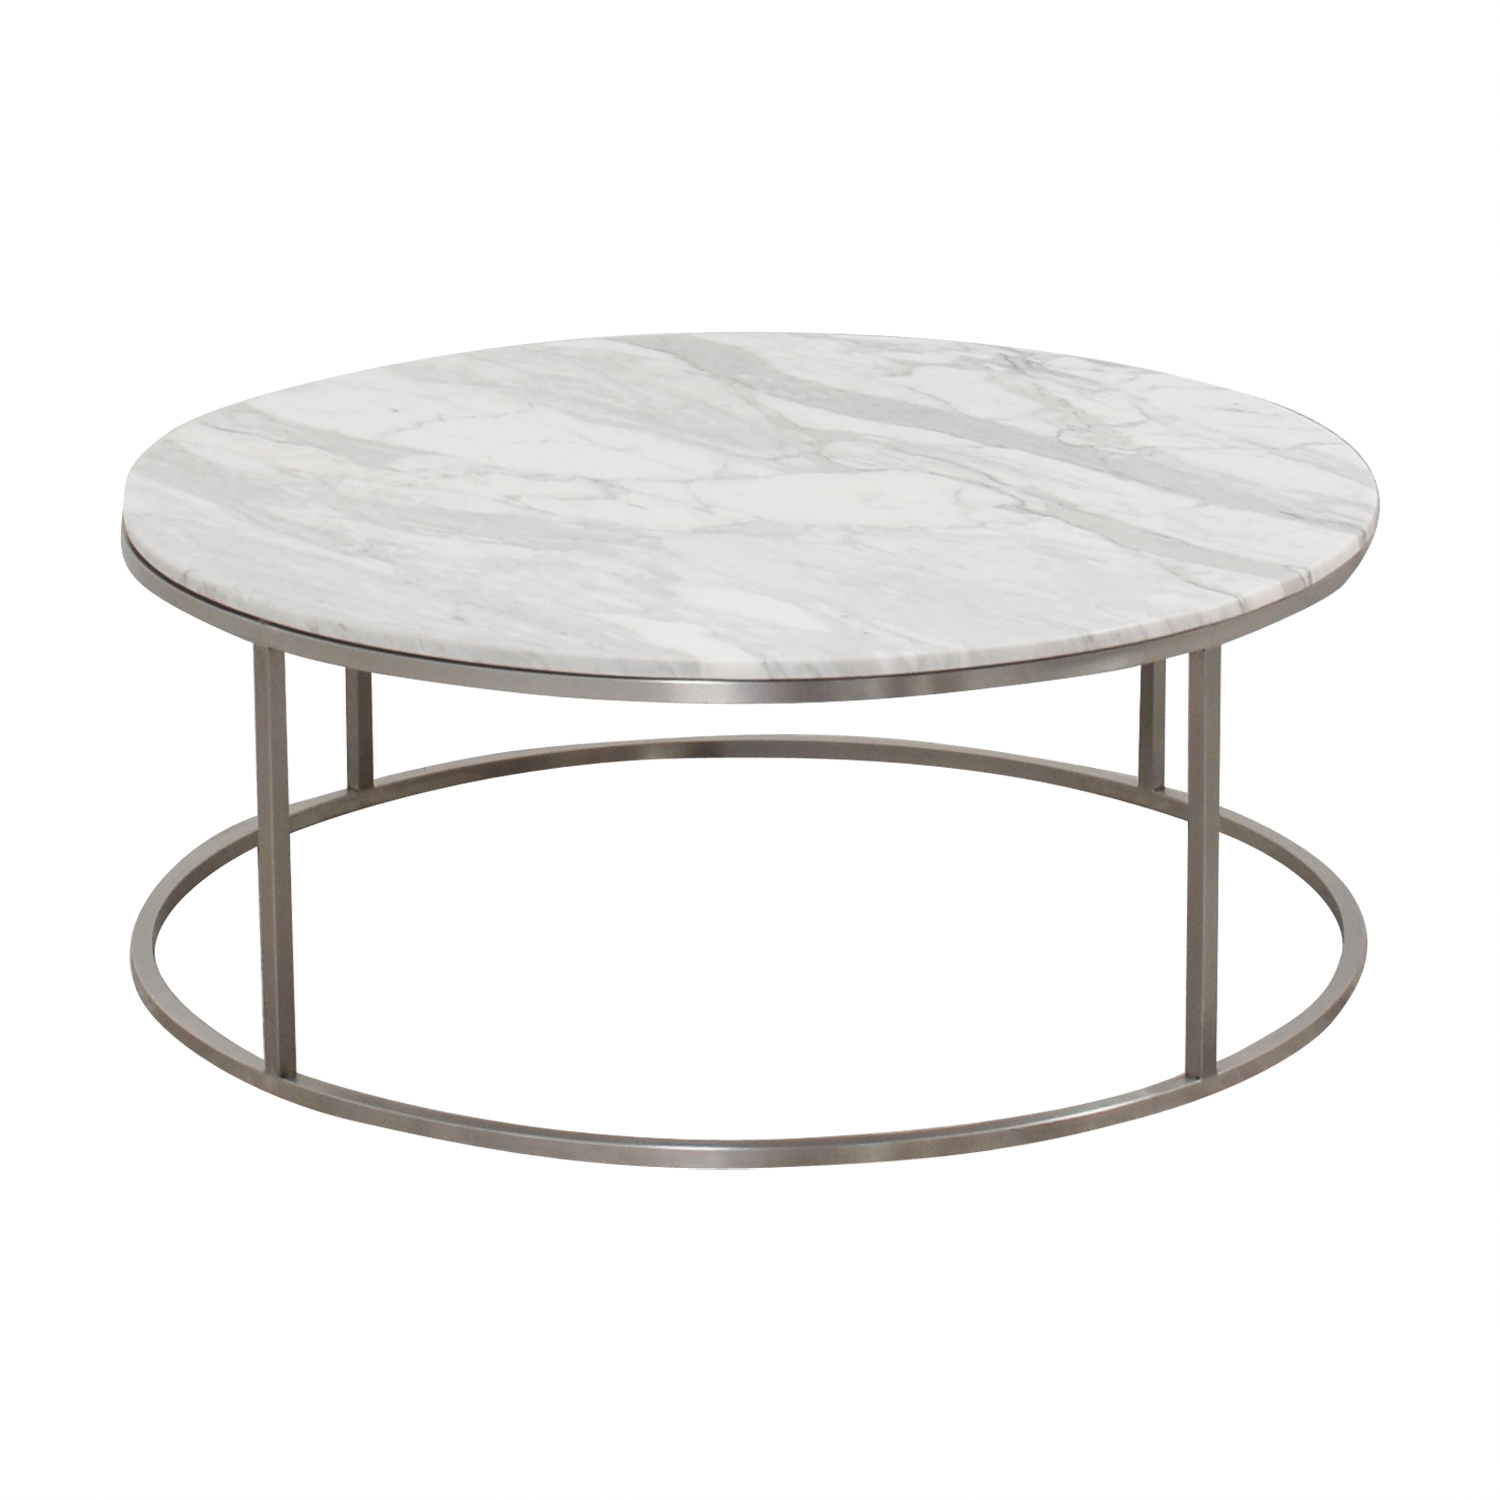 67 Off Design Within Reach Design Within Reach Marble